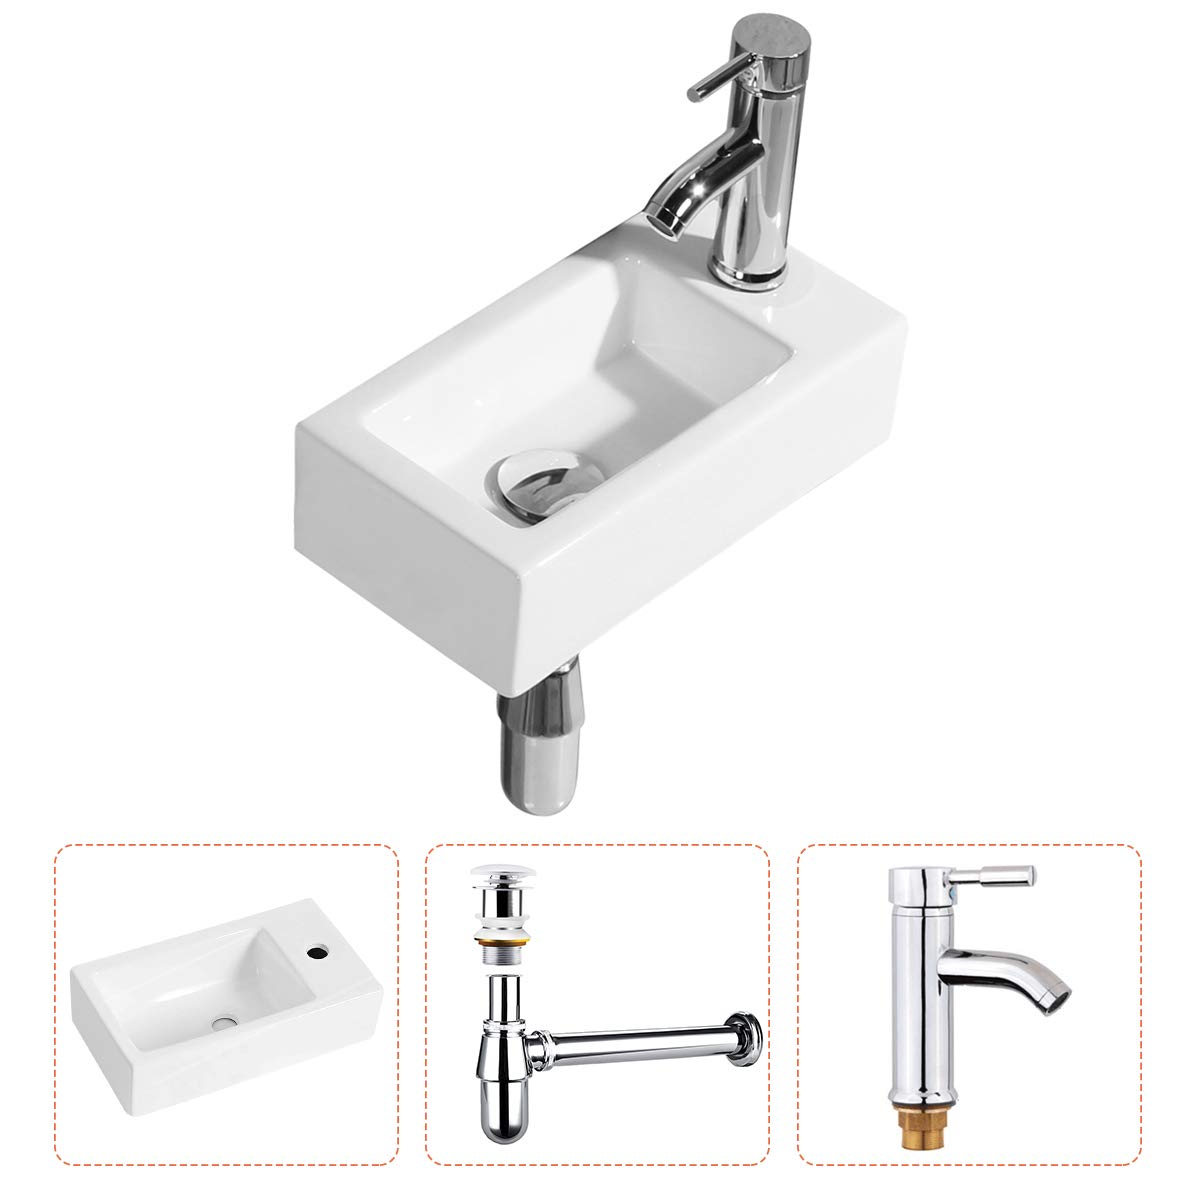 Gimify Bathroom Corner Sink Wall Hung Basin Rectangular Wall Mounted Small Cloakroom Sink Ceramic Modern in White – Faucet No Overflow Drain Included